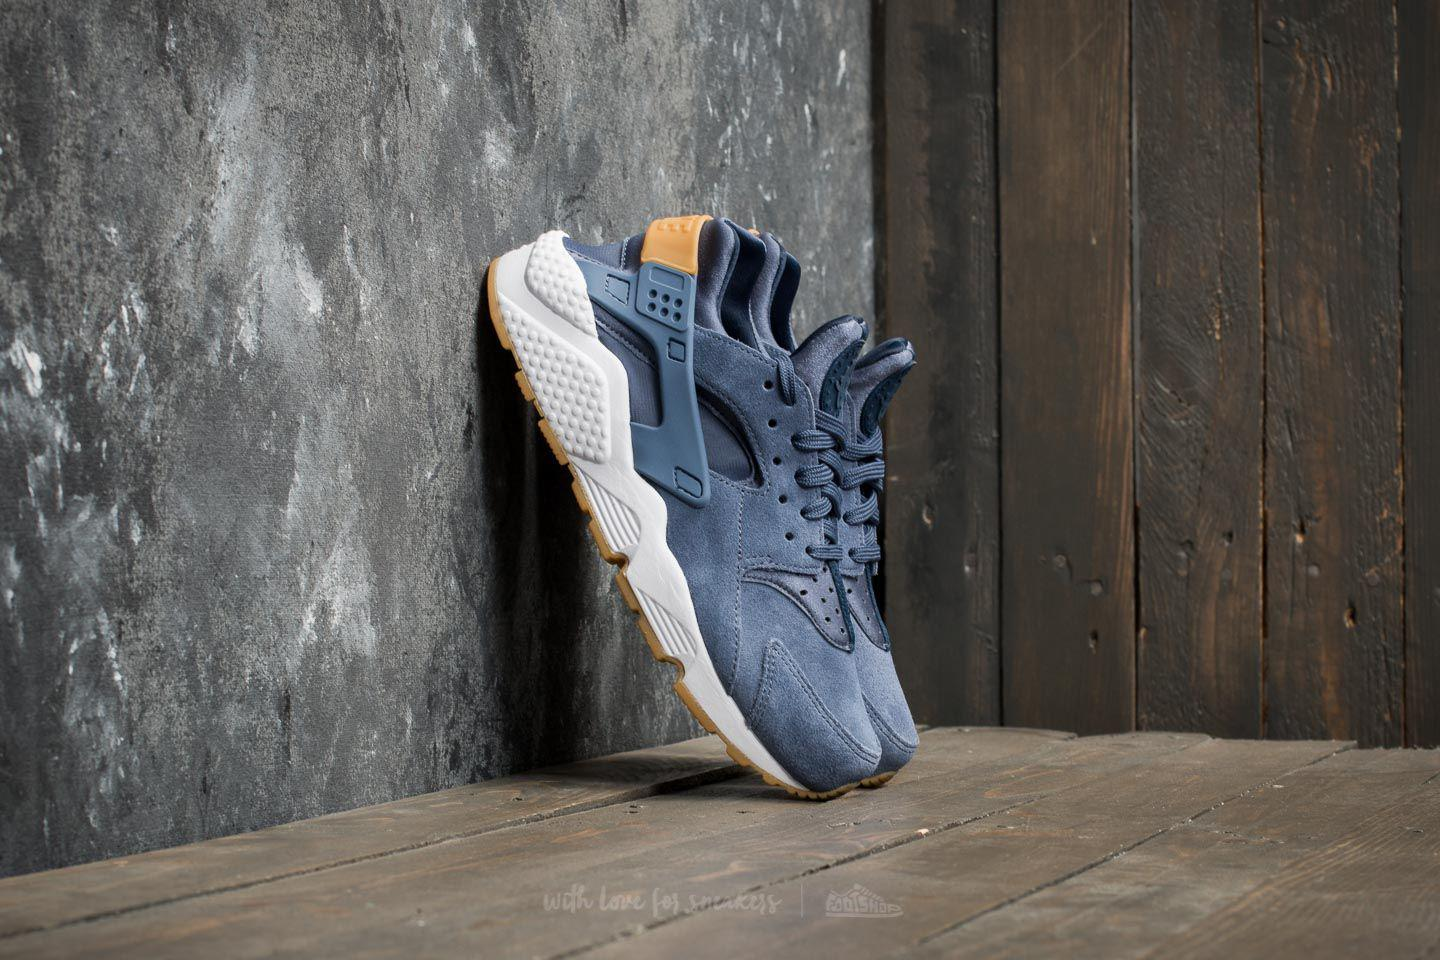 8a500d23cc1b6 Lyst - Nike Wmns Air Huarache Run Sd Diffused Blue  Diffused Blue in ...